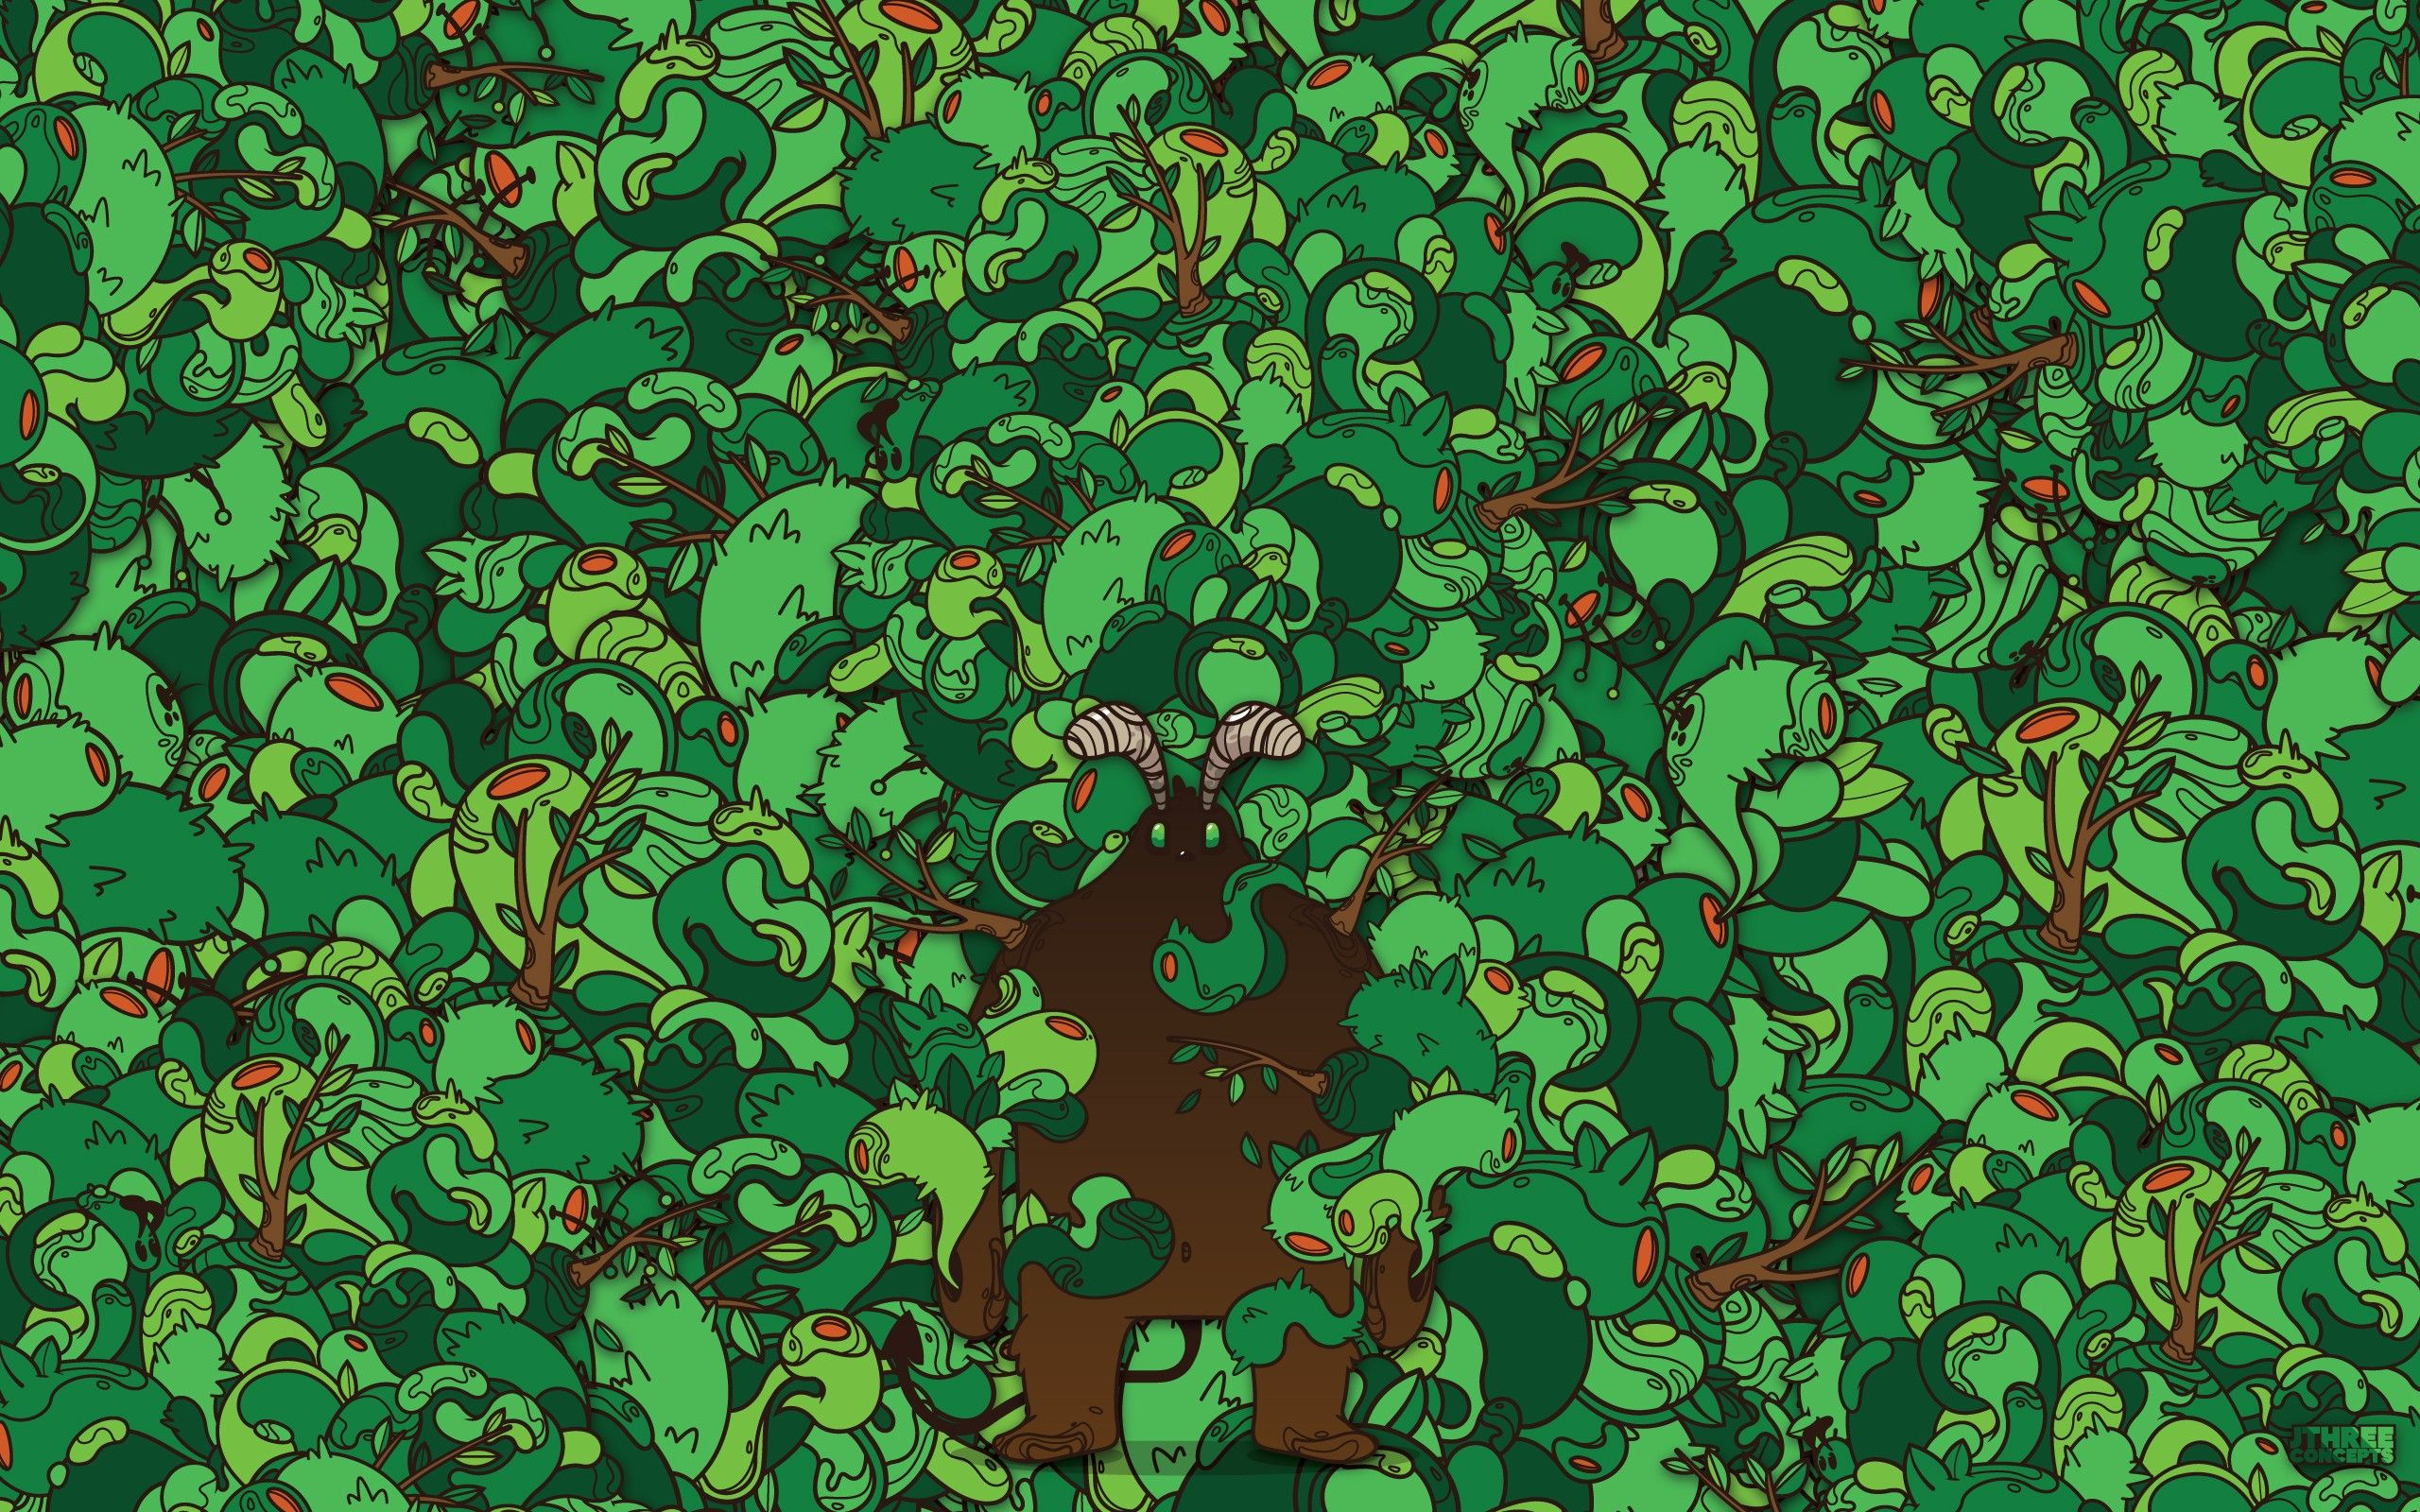 2560x1600 green, Abstract, Forest, Vector, Hipster, Artwork, Jthree ...